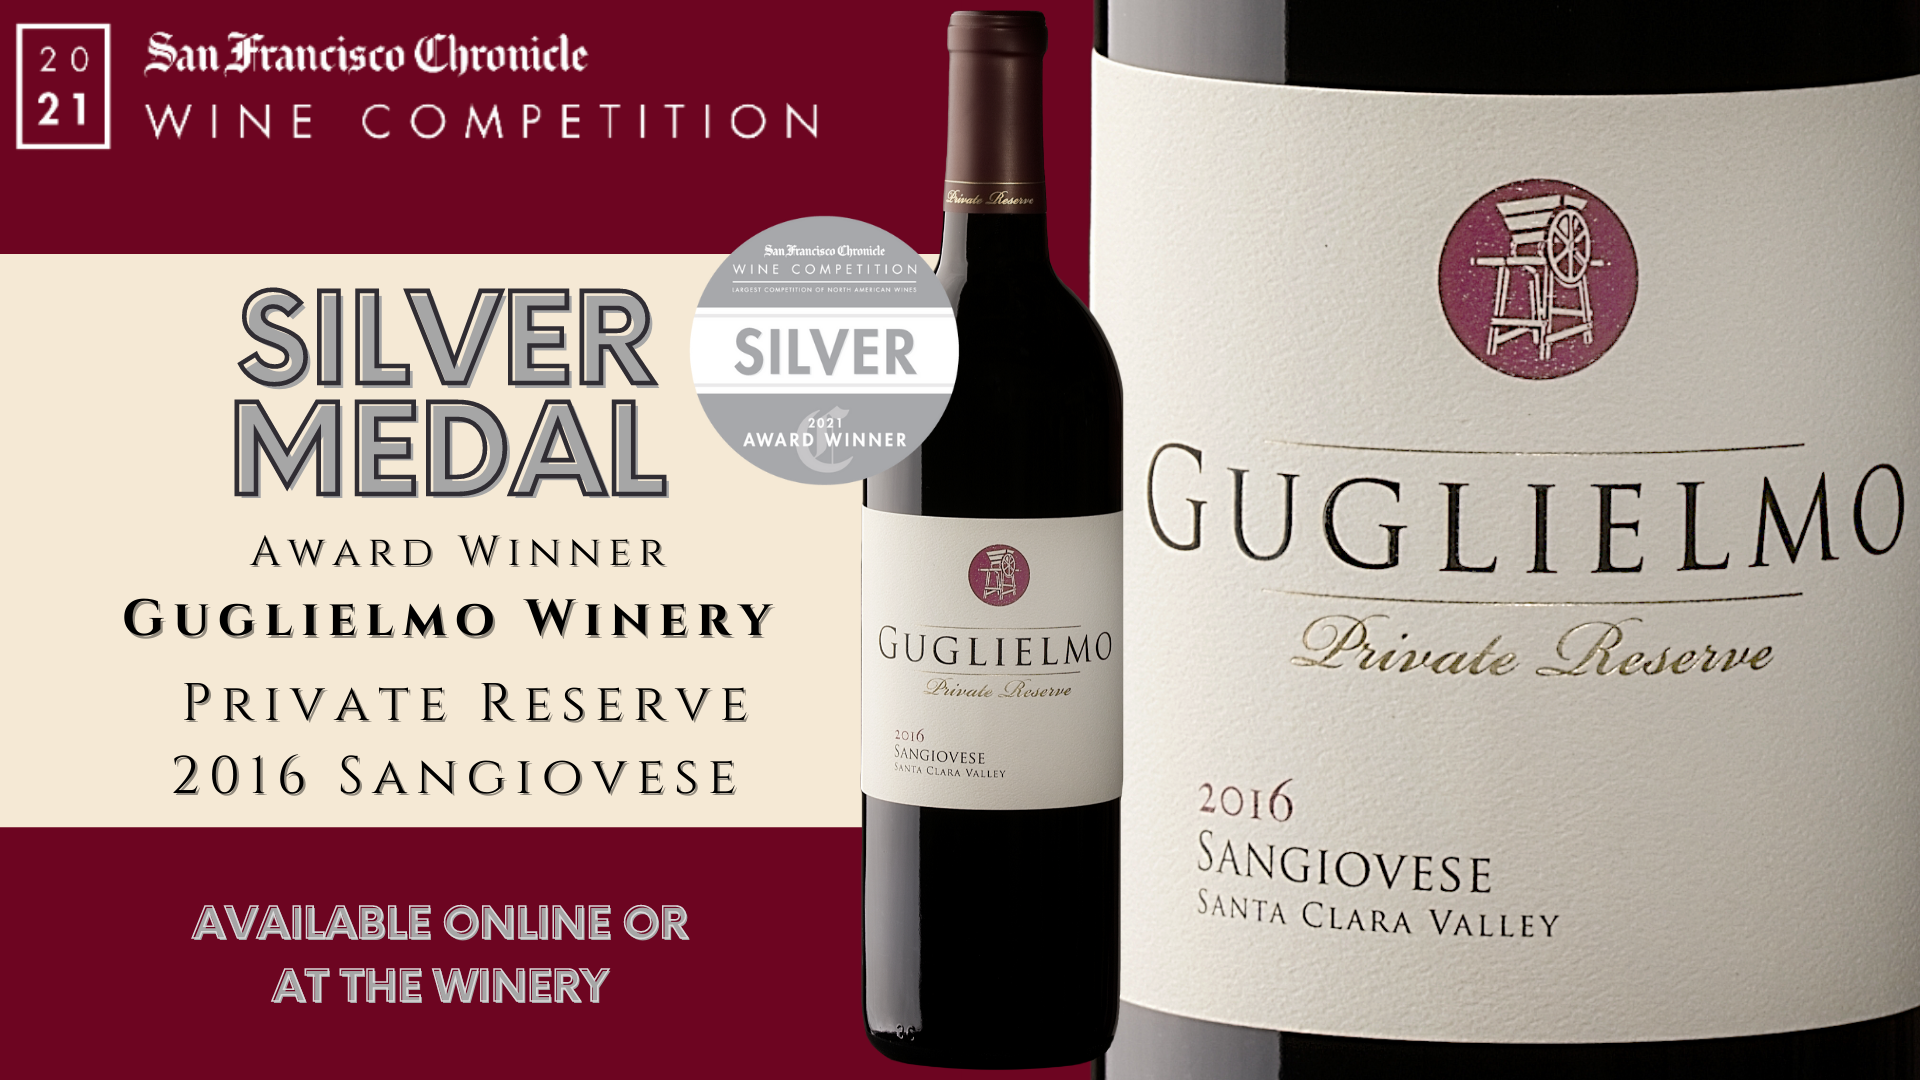 San Francisco Chronicle Wine Competition 2021 Gold Medal Award Winner 2016 Guglielmo Private Reserve Sangiovese